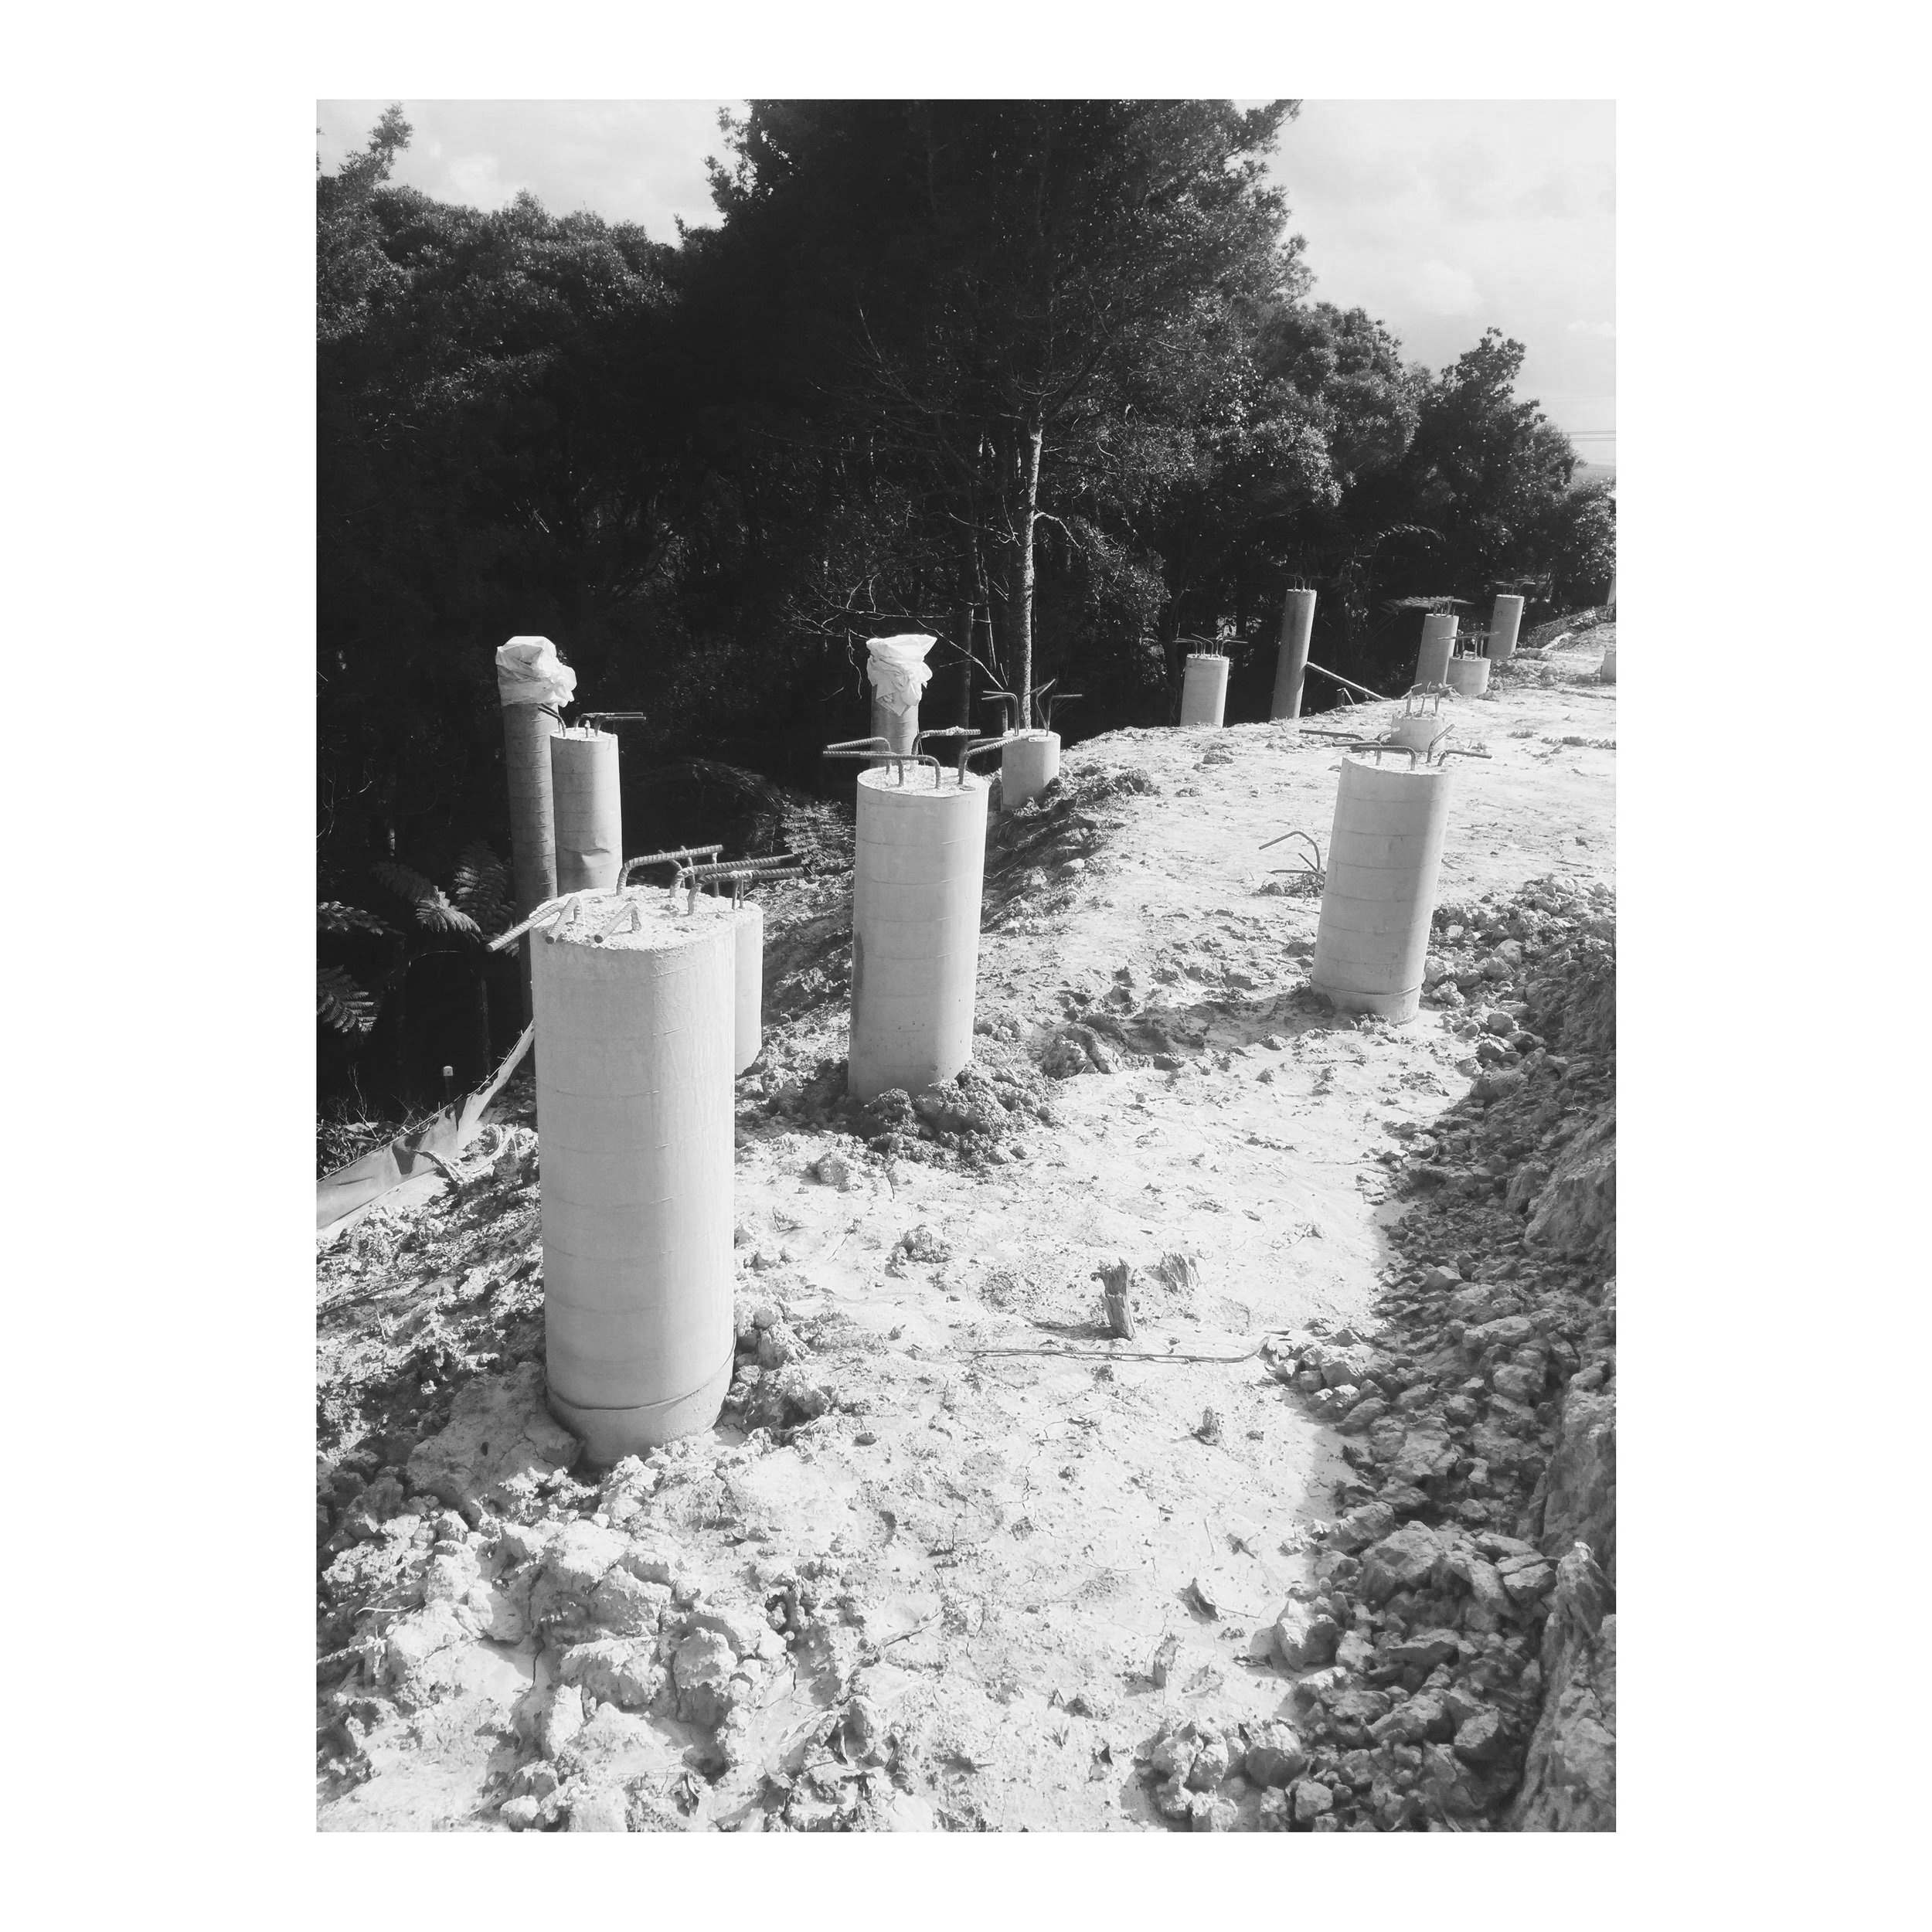 CONCRETE PILING   Instead of your standard timber pole piling, we opted for steel enforced concrete piling. With some piles exceeding 10m depth into the ground. Very cost effective and a fast process.